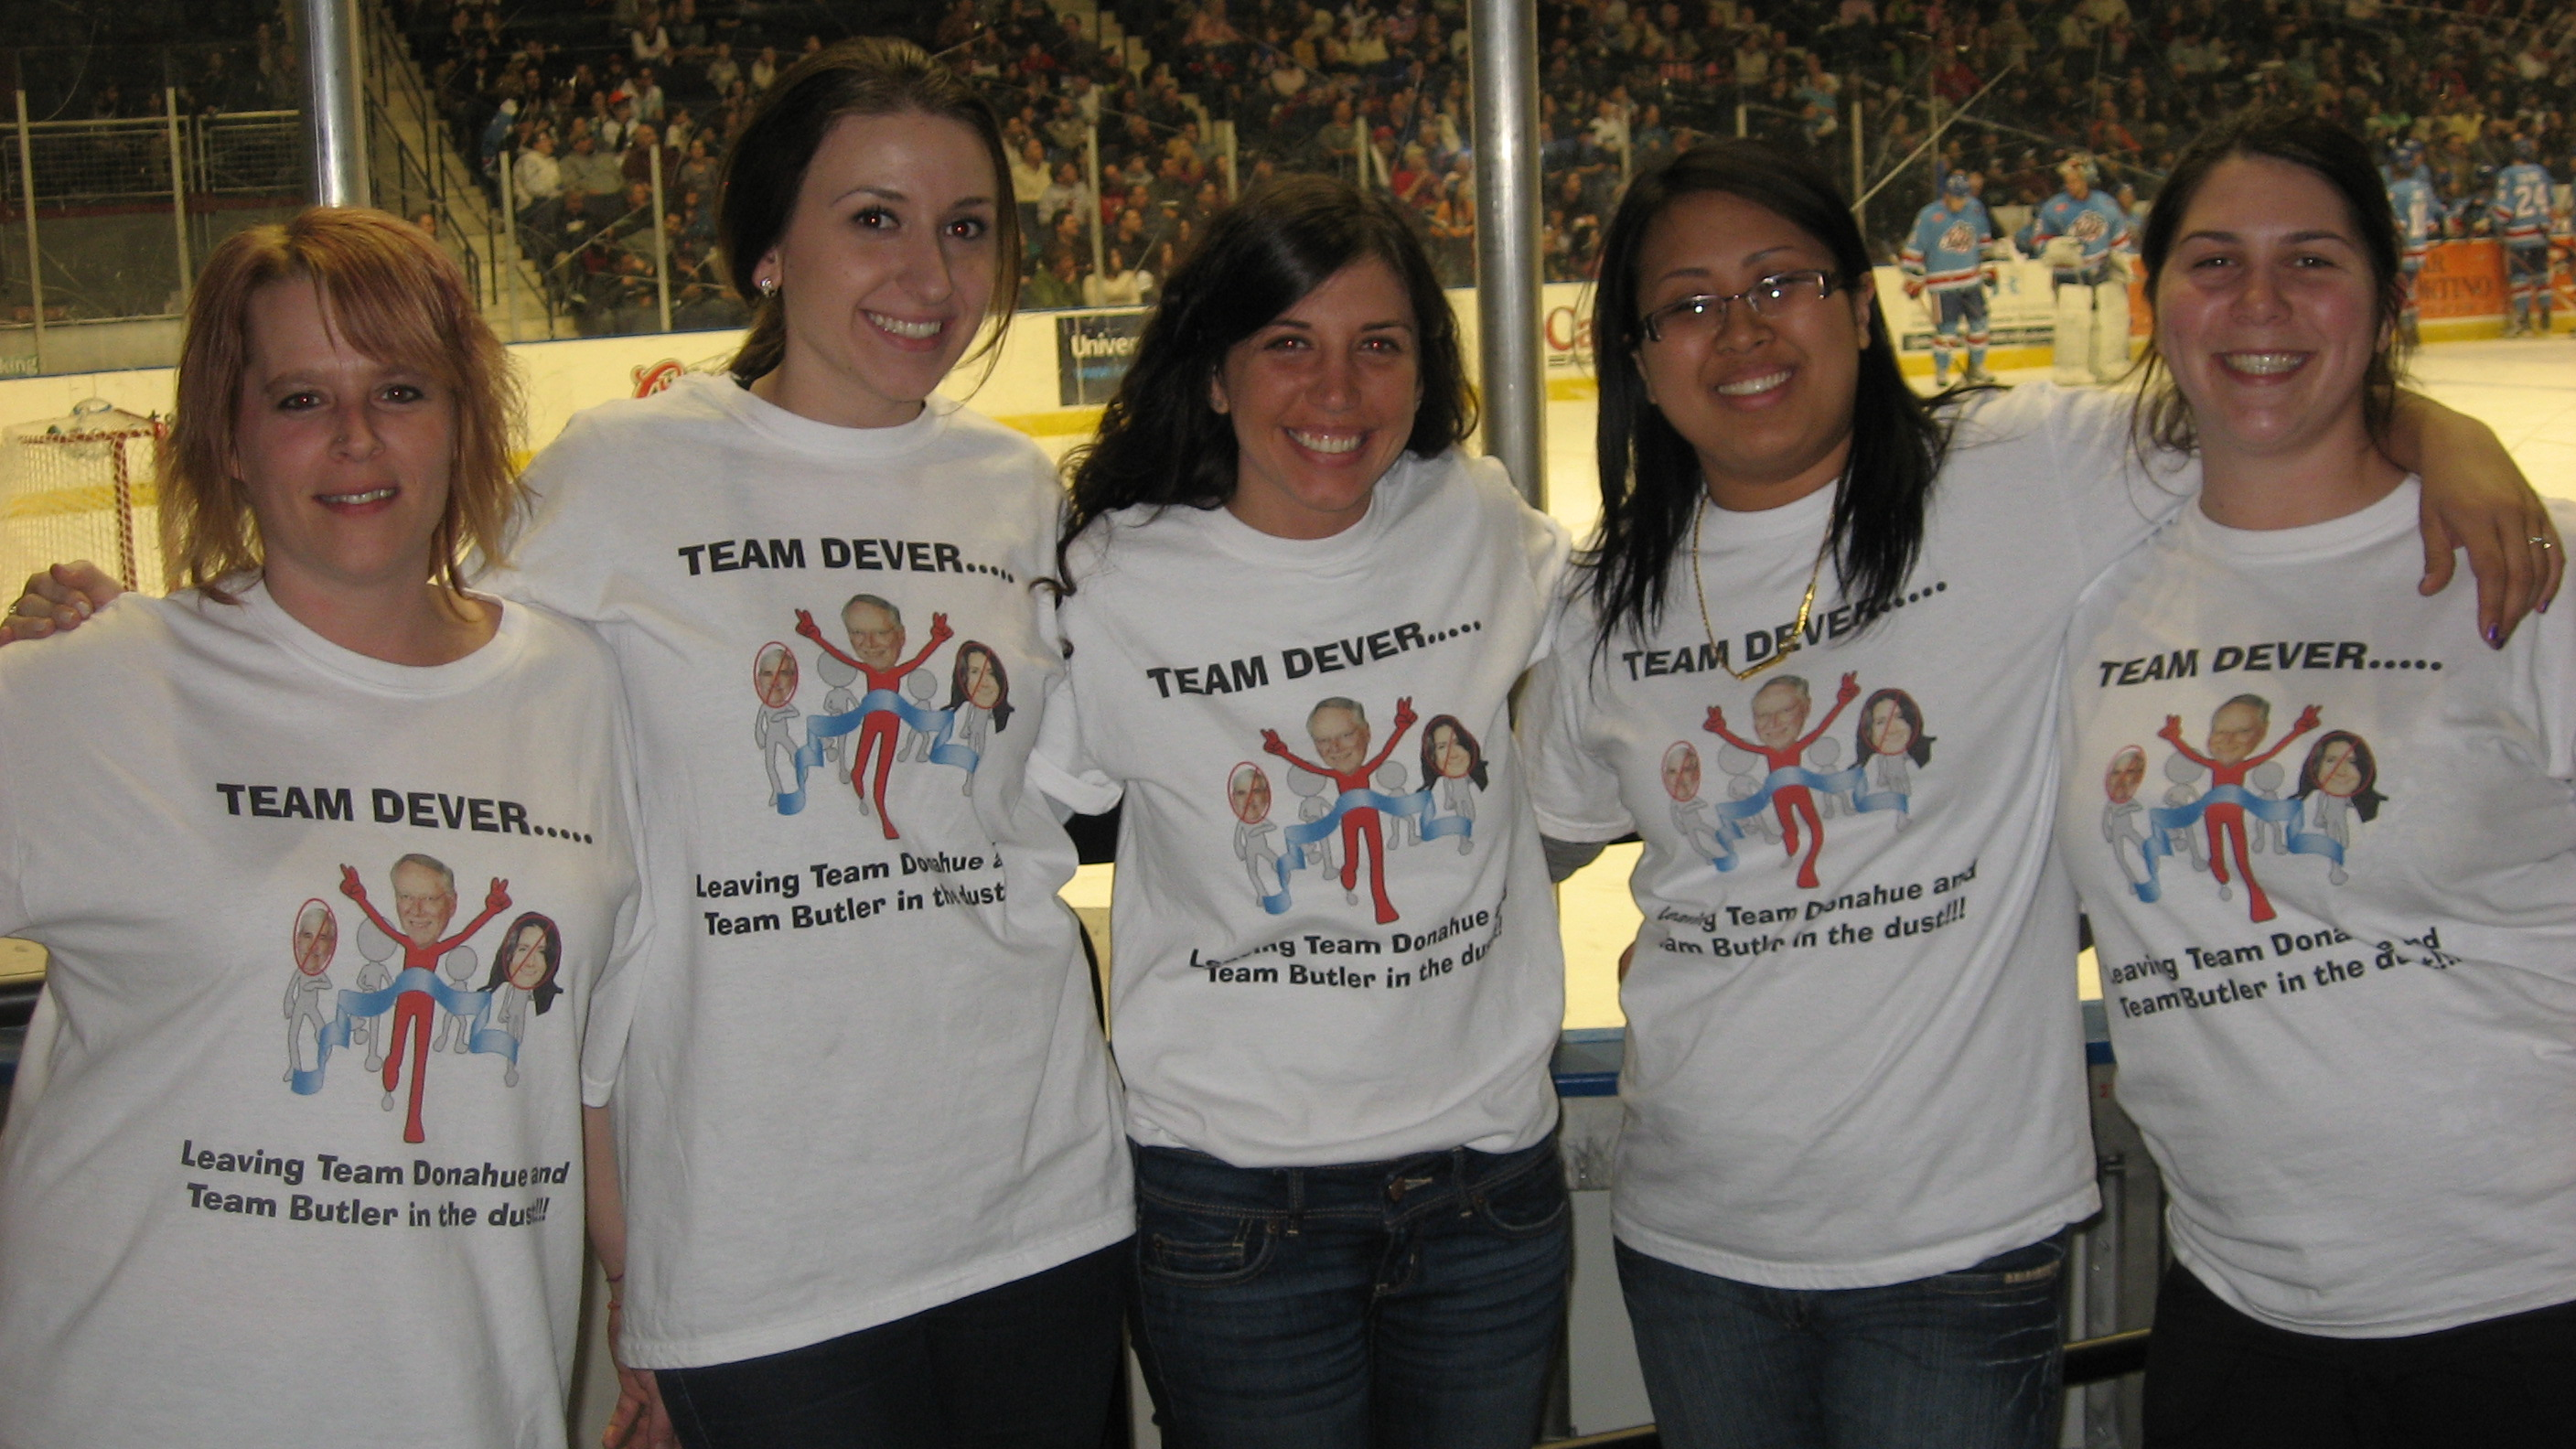 Custom T-Shirts for Broom Ball Fundraiser To Fight Prostate Cancer ...